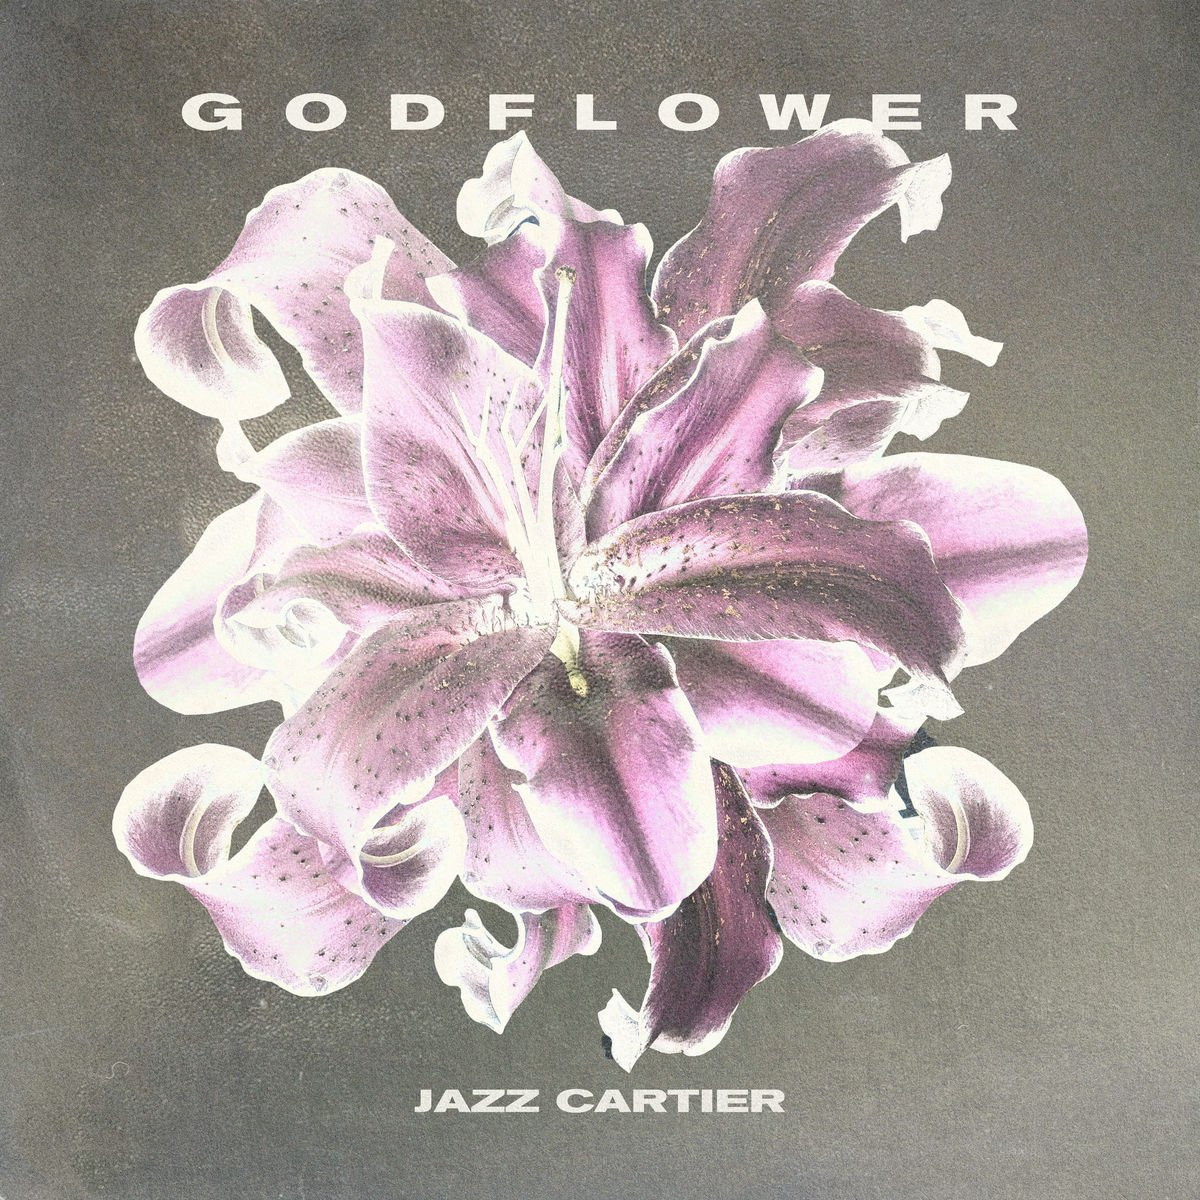 jazz cartier godflower